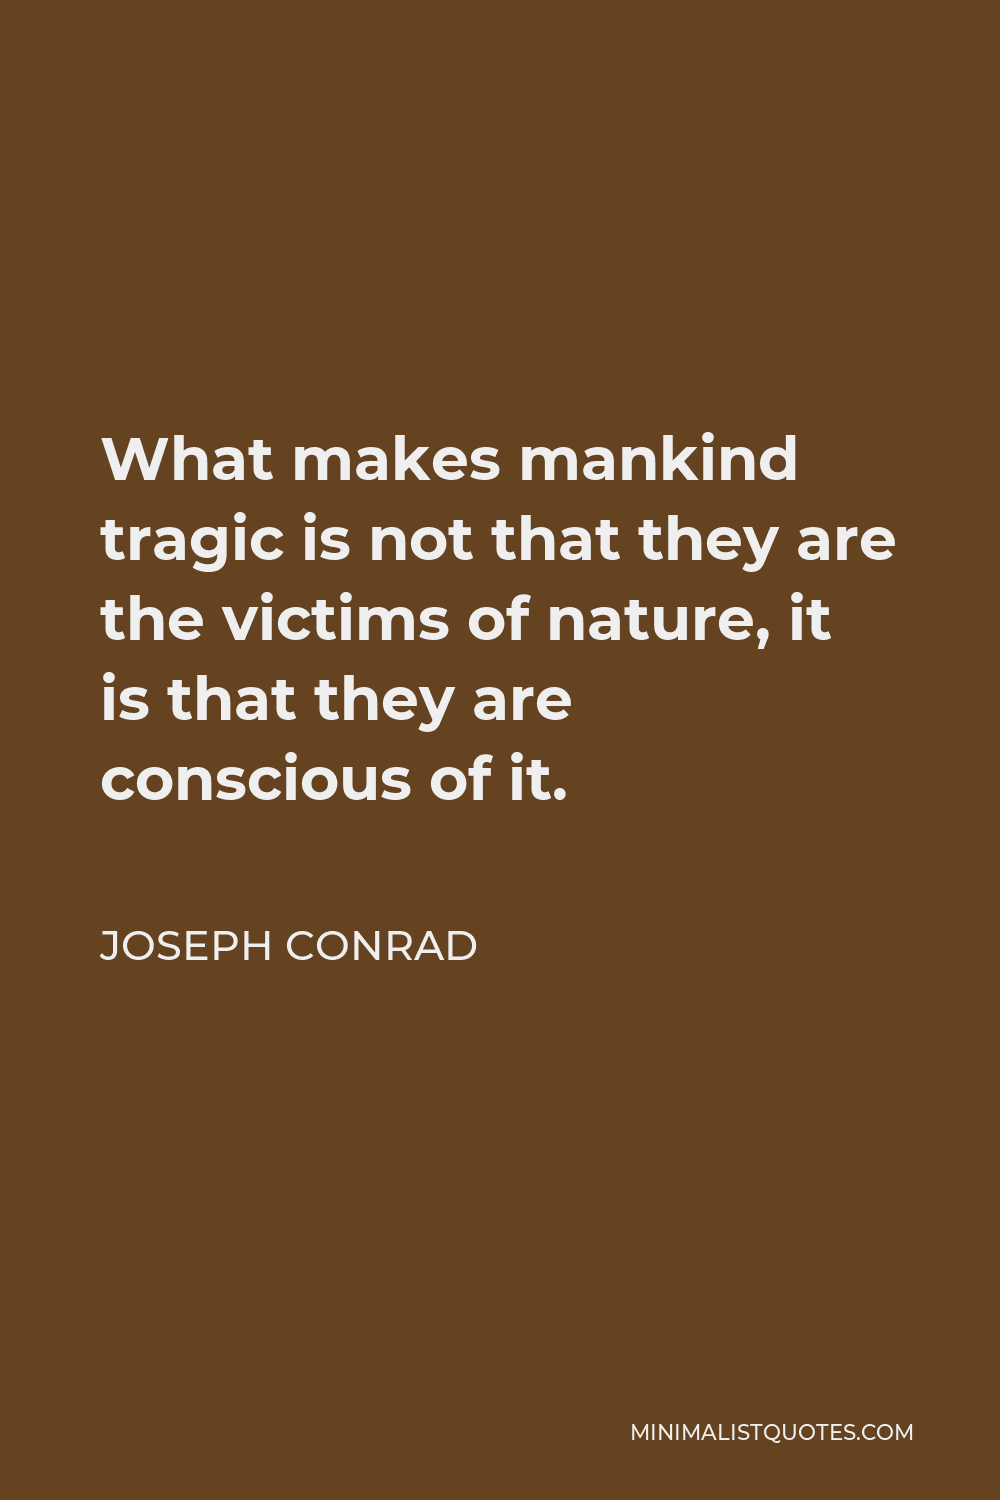 Joseph Conrad Quote - What makes mankind tragic is not that they are the victims of nature, it is that they are conscious of it.